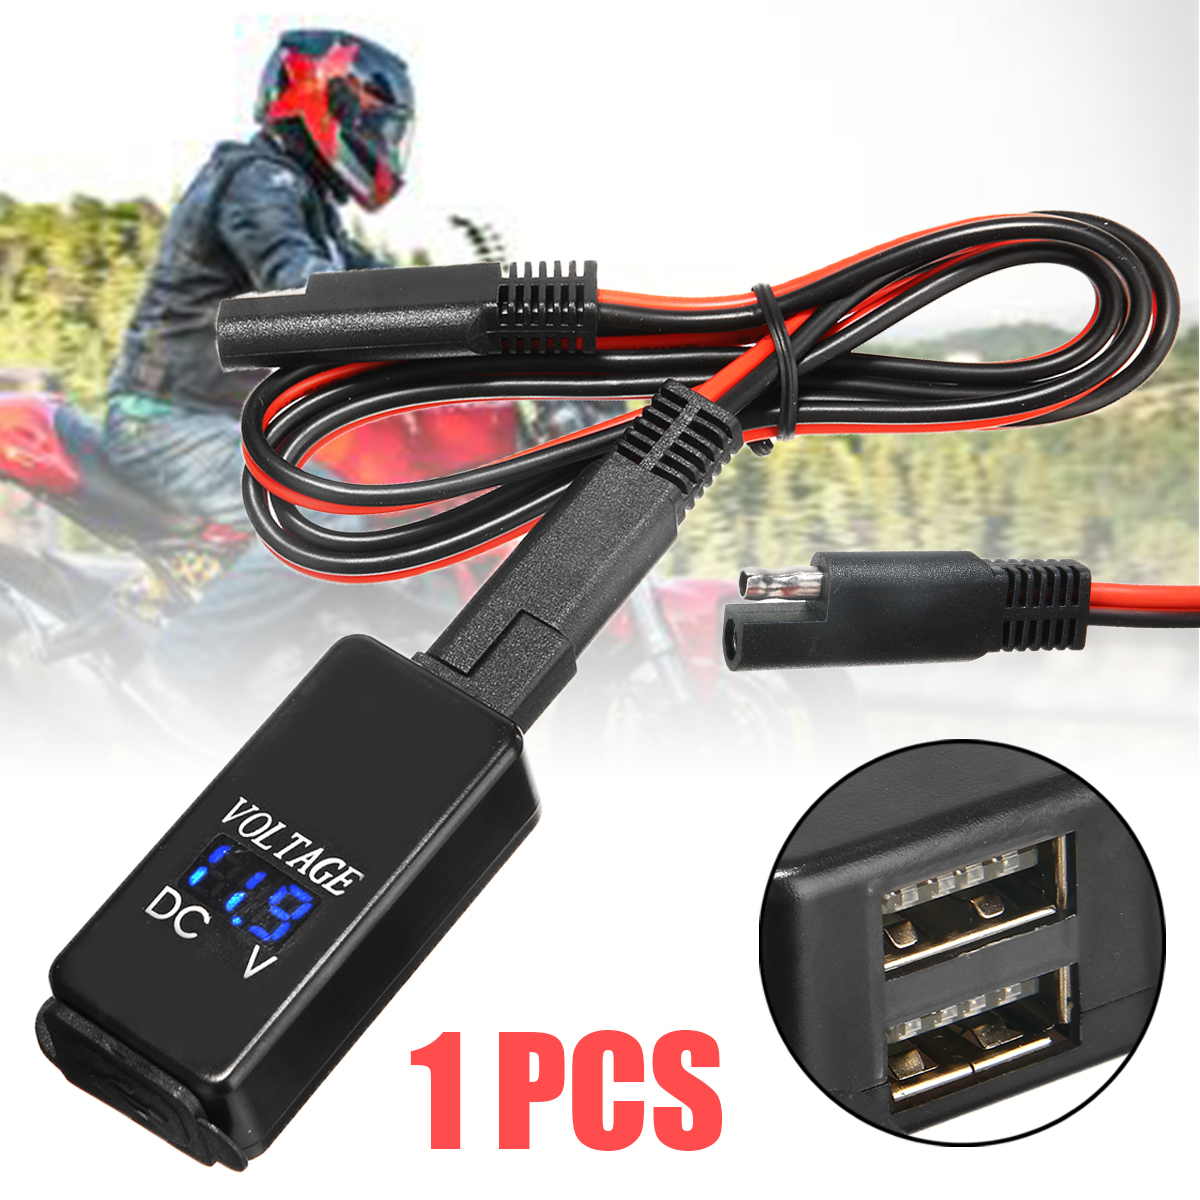 For Cell Phones GPS Camera 1PC ABS Motorcycle SAE To Dual USB Adapter Cable Phone Charger LED Voltmeter 5V 2.1A Mayitr-in Cables, Adapters & Sockets from Automobiles & Motorcycles